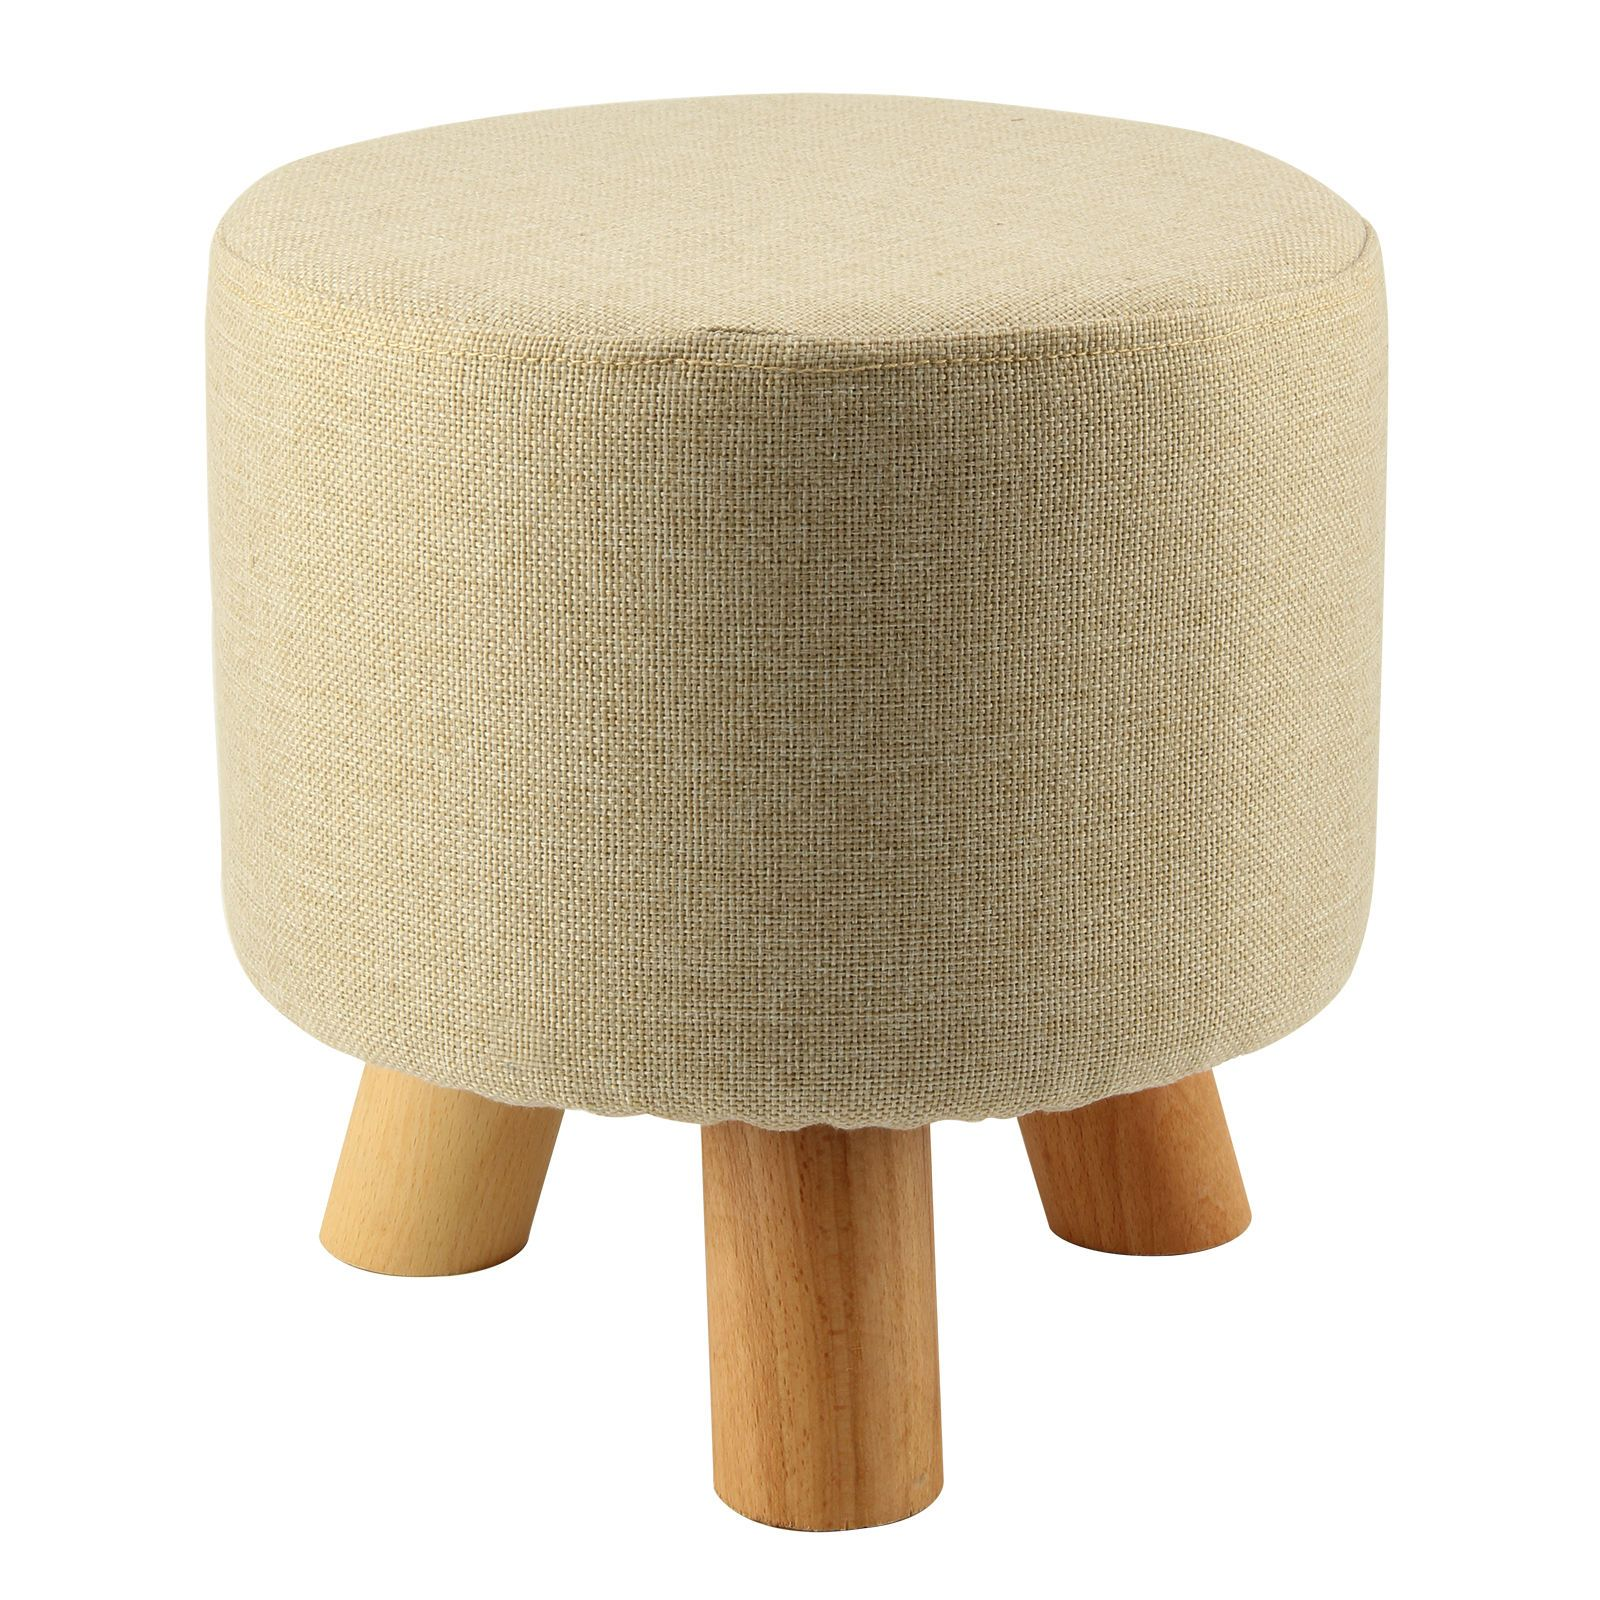 Modern Luxury Upholstered Footstool Round Pouffe Stool + Wooden ...